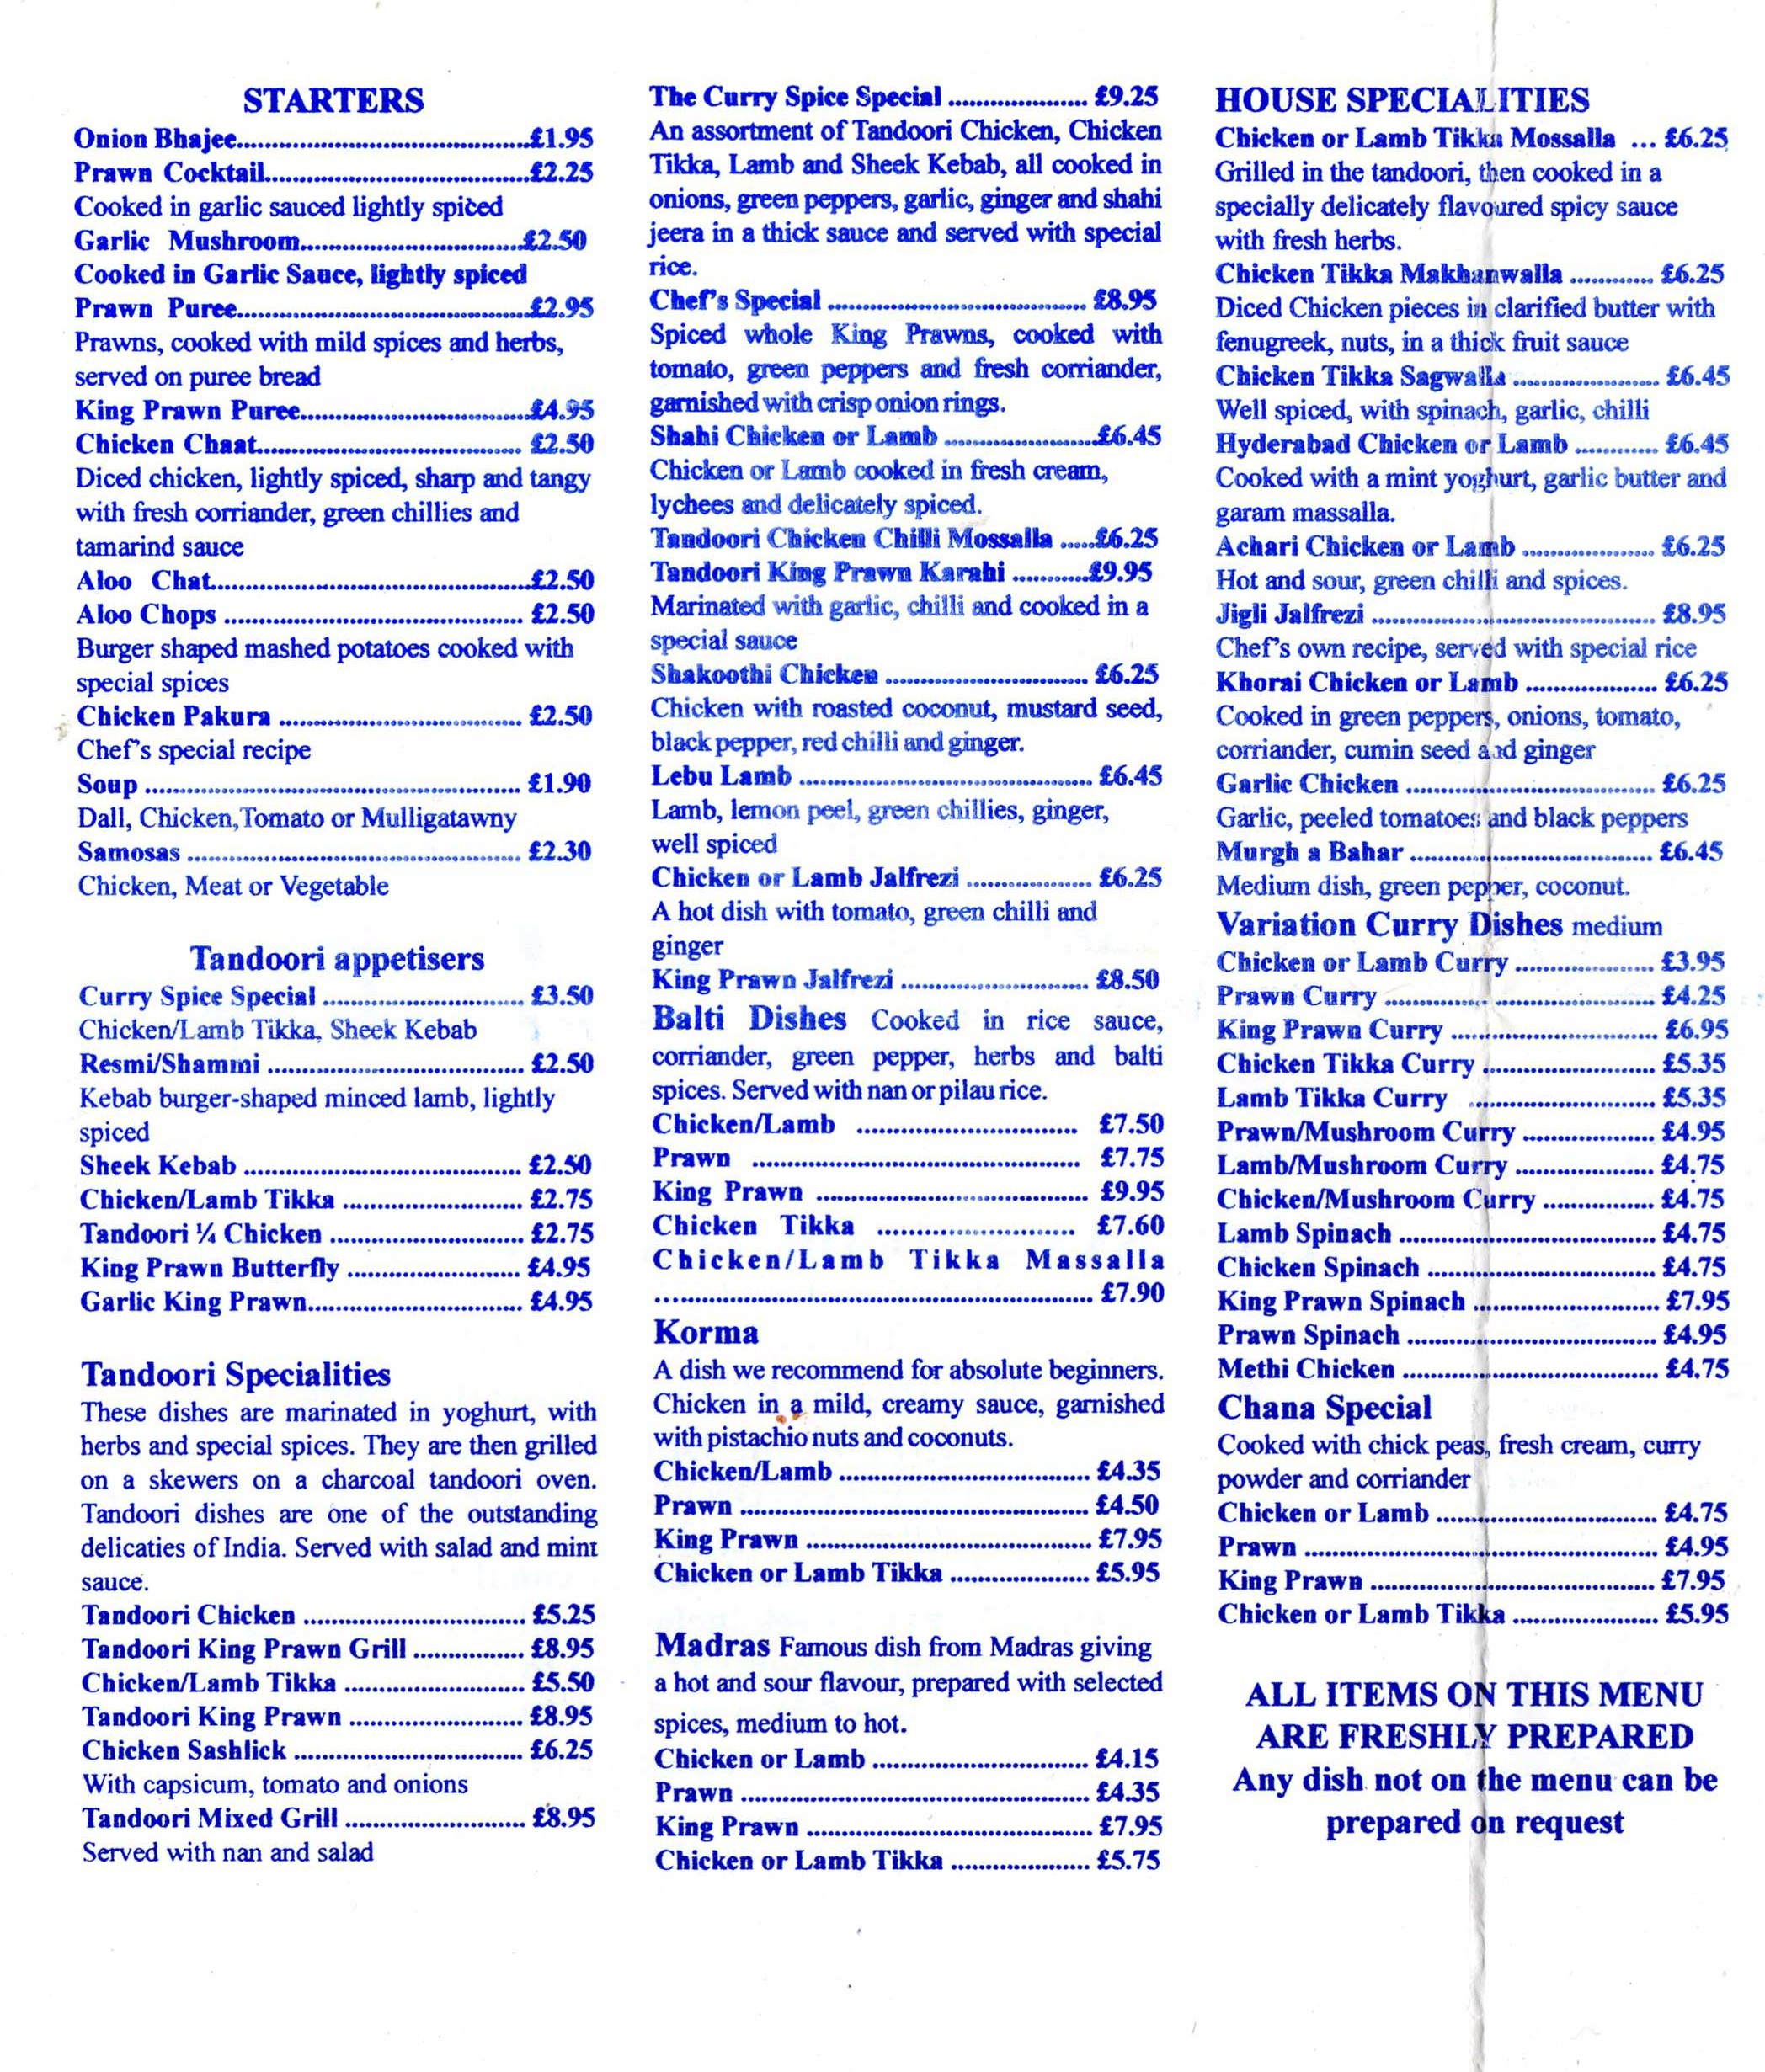 The curry spice indian restaurant and takeaway menu 1 for Akbar cuisine of india menu